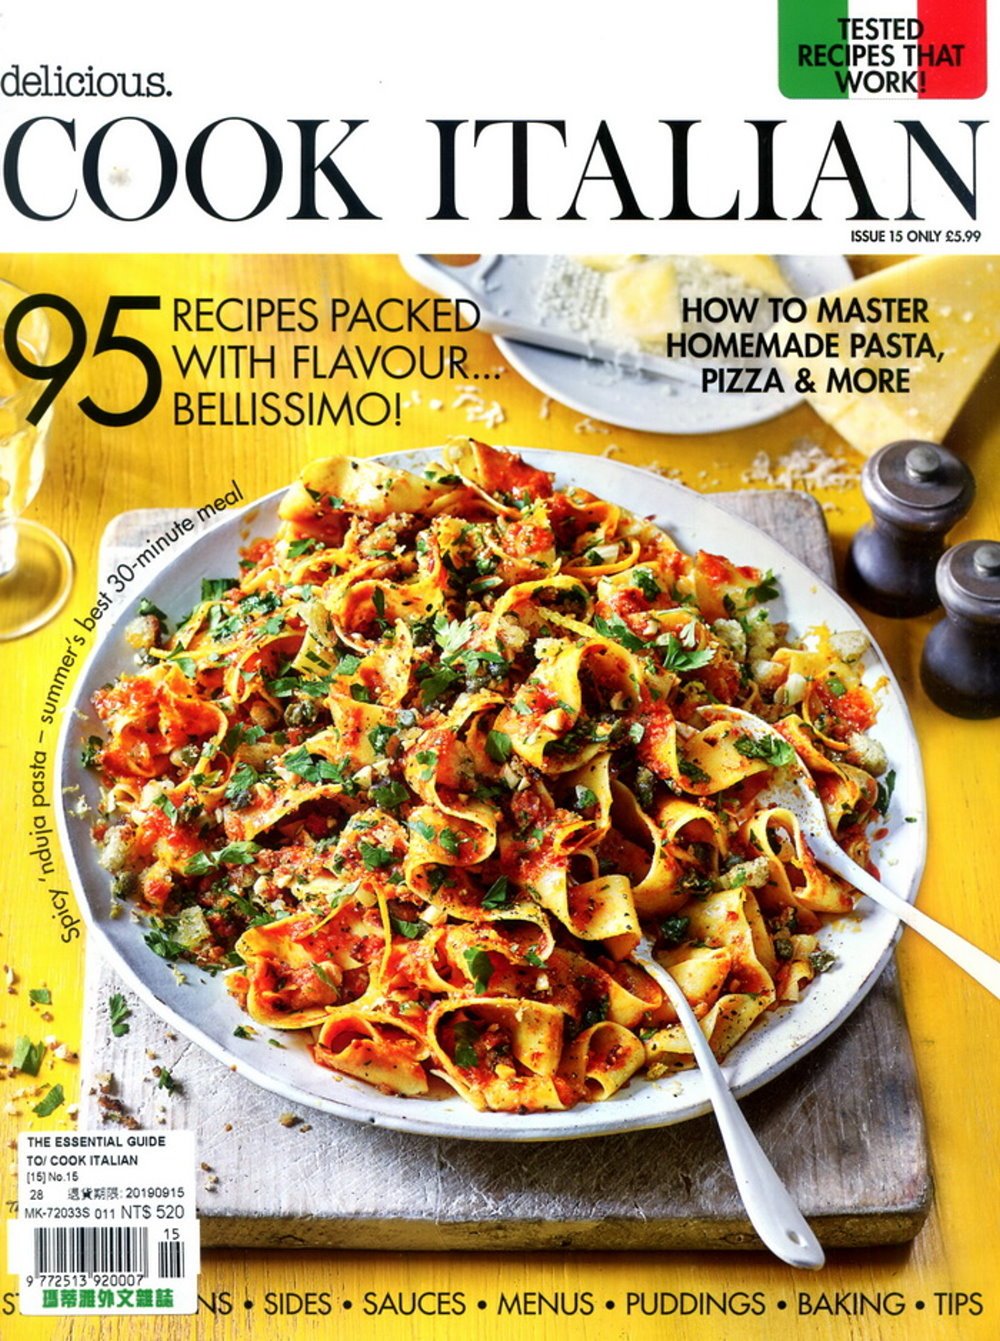 The ESSENTIAL GUIDE TO delicious. COOK ITALIAN 第15期